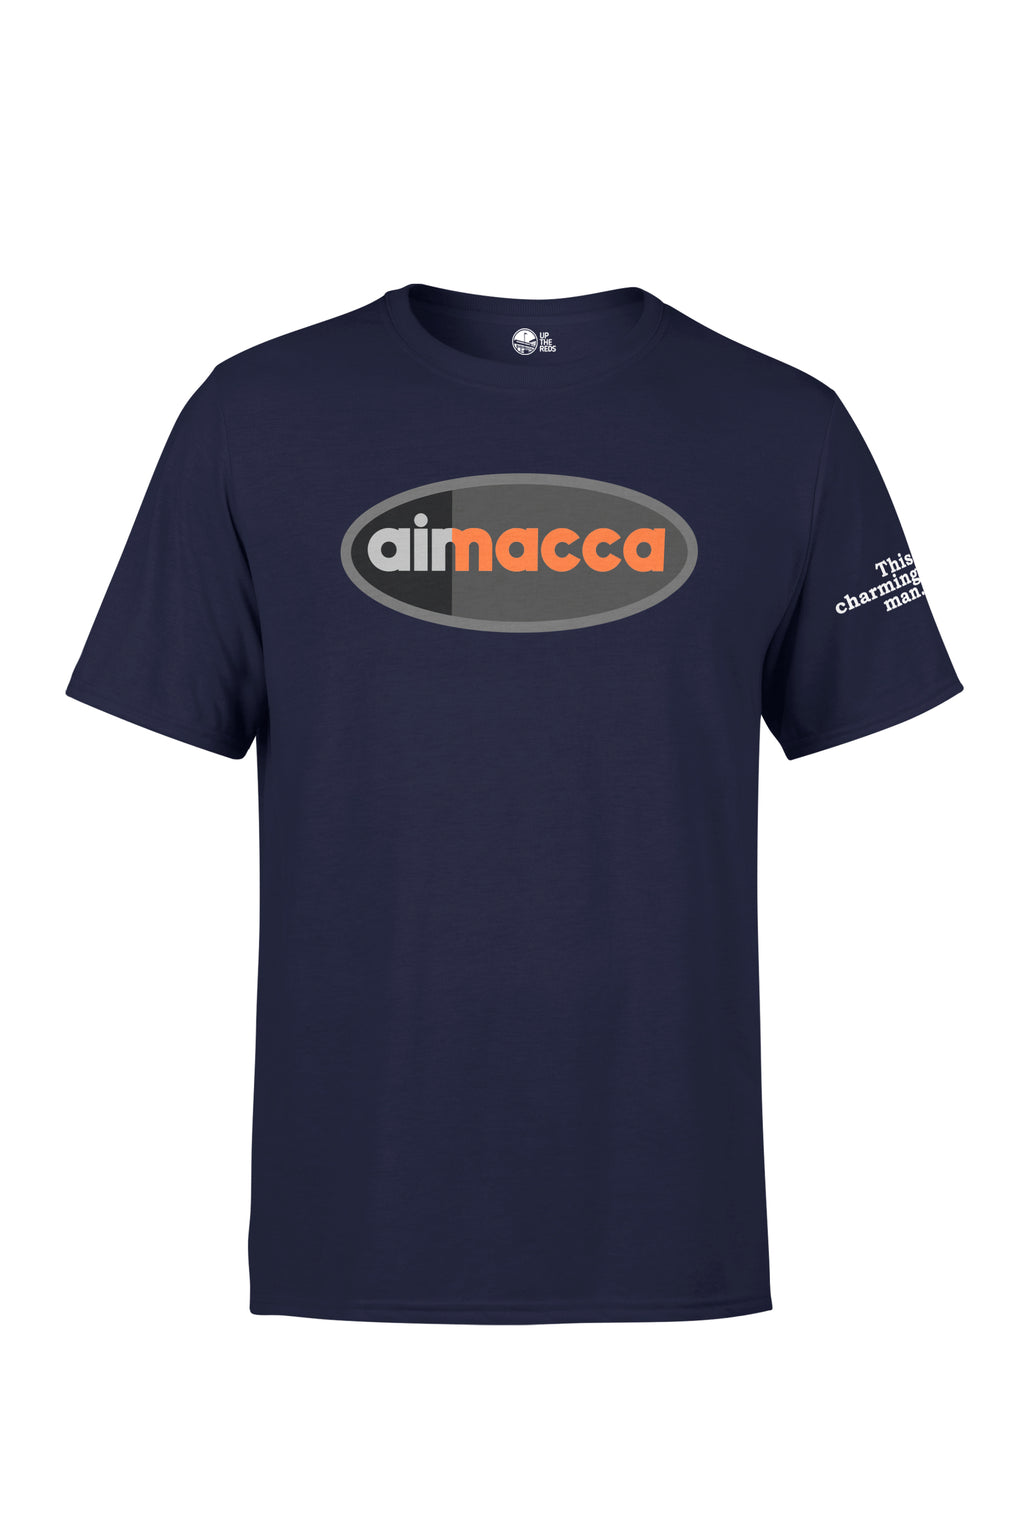 UTR x Jack McLoughlin- Air Macca - Orange (Navy)